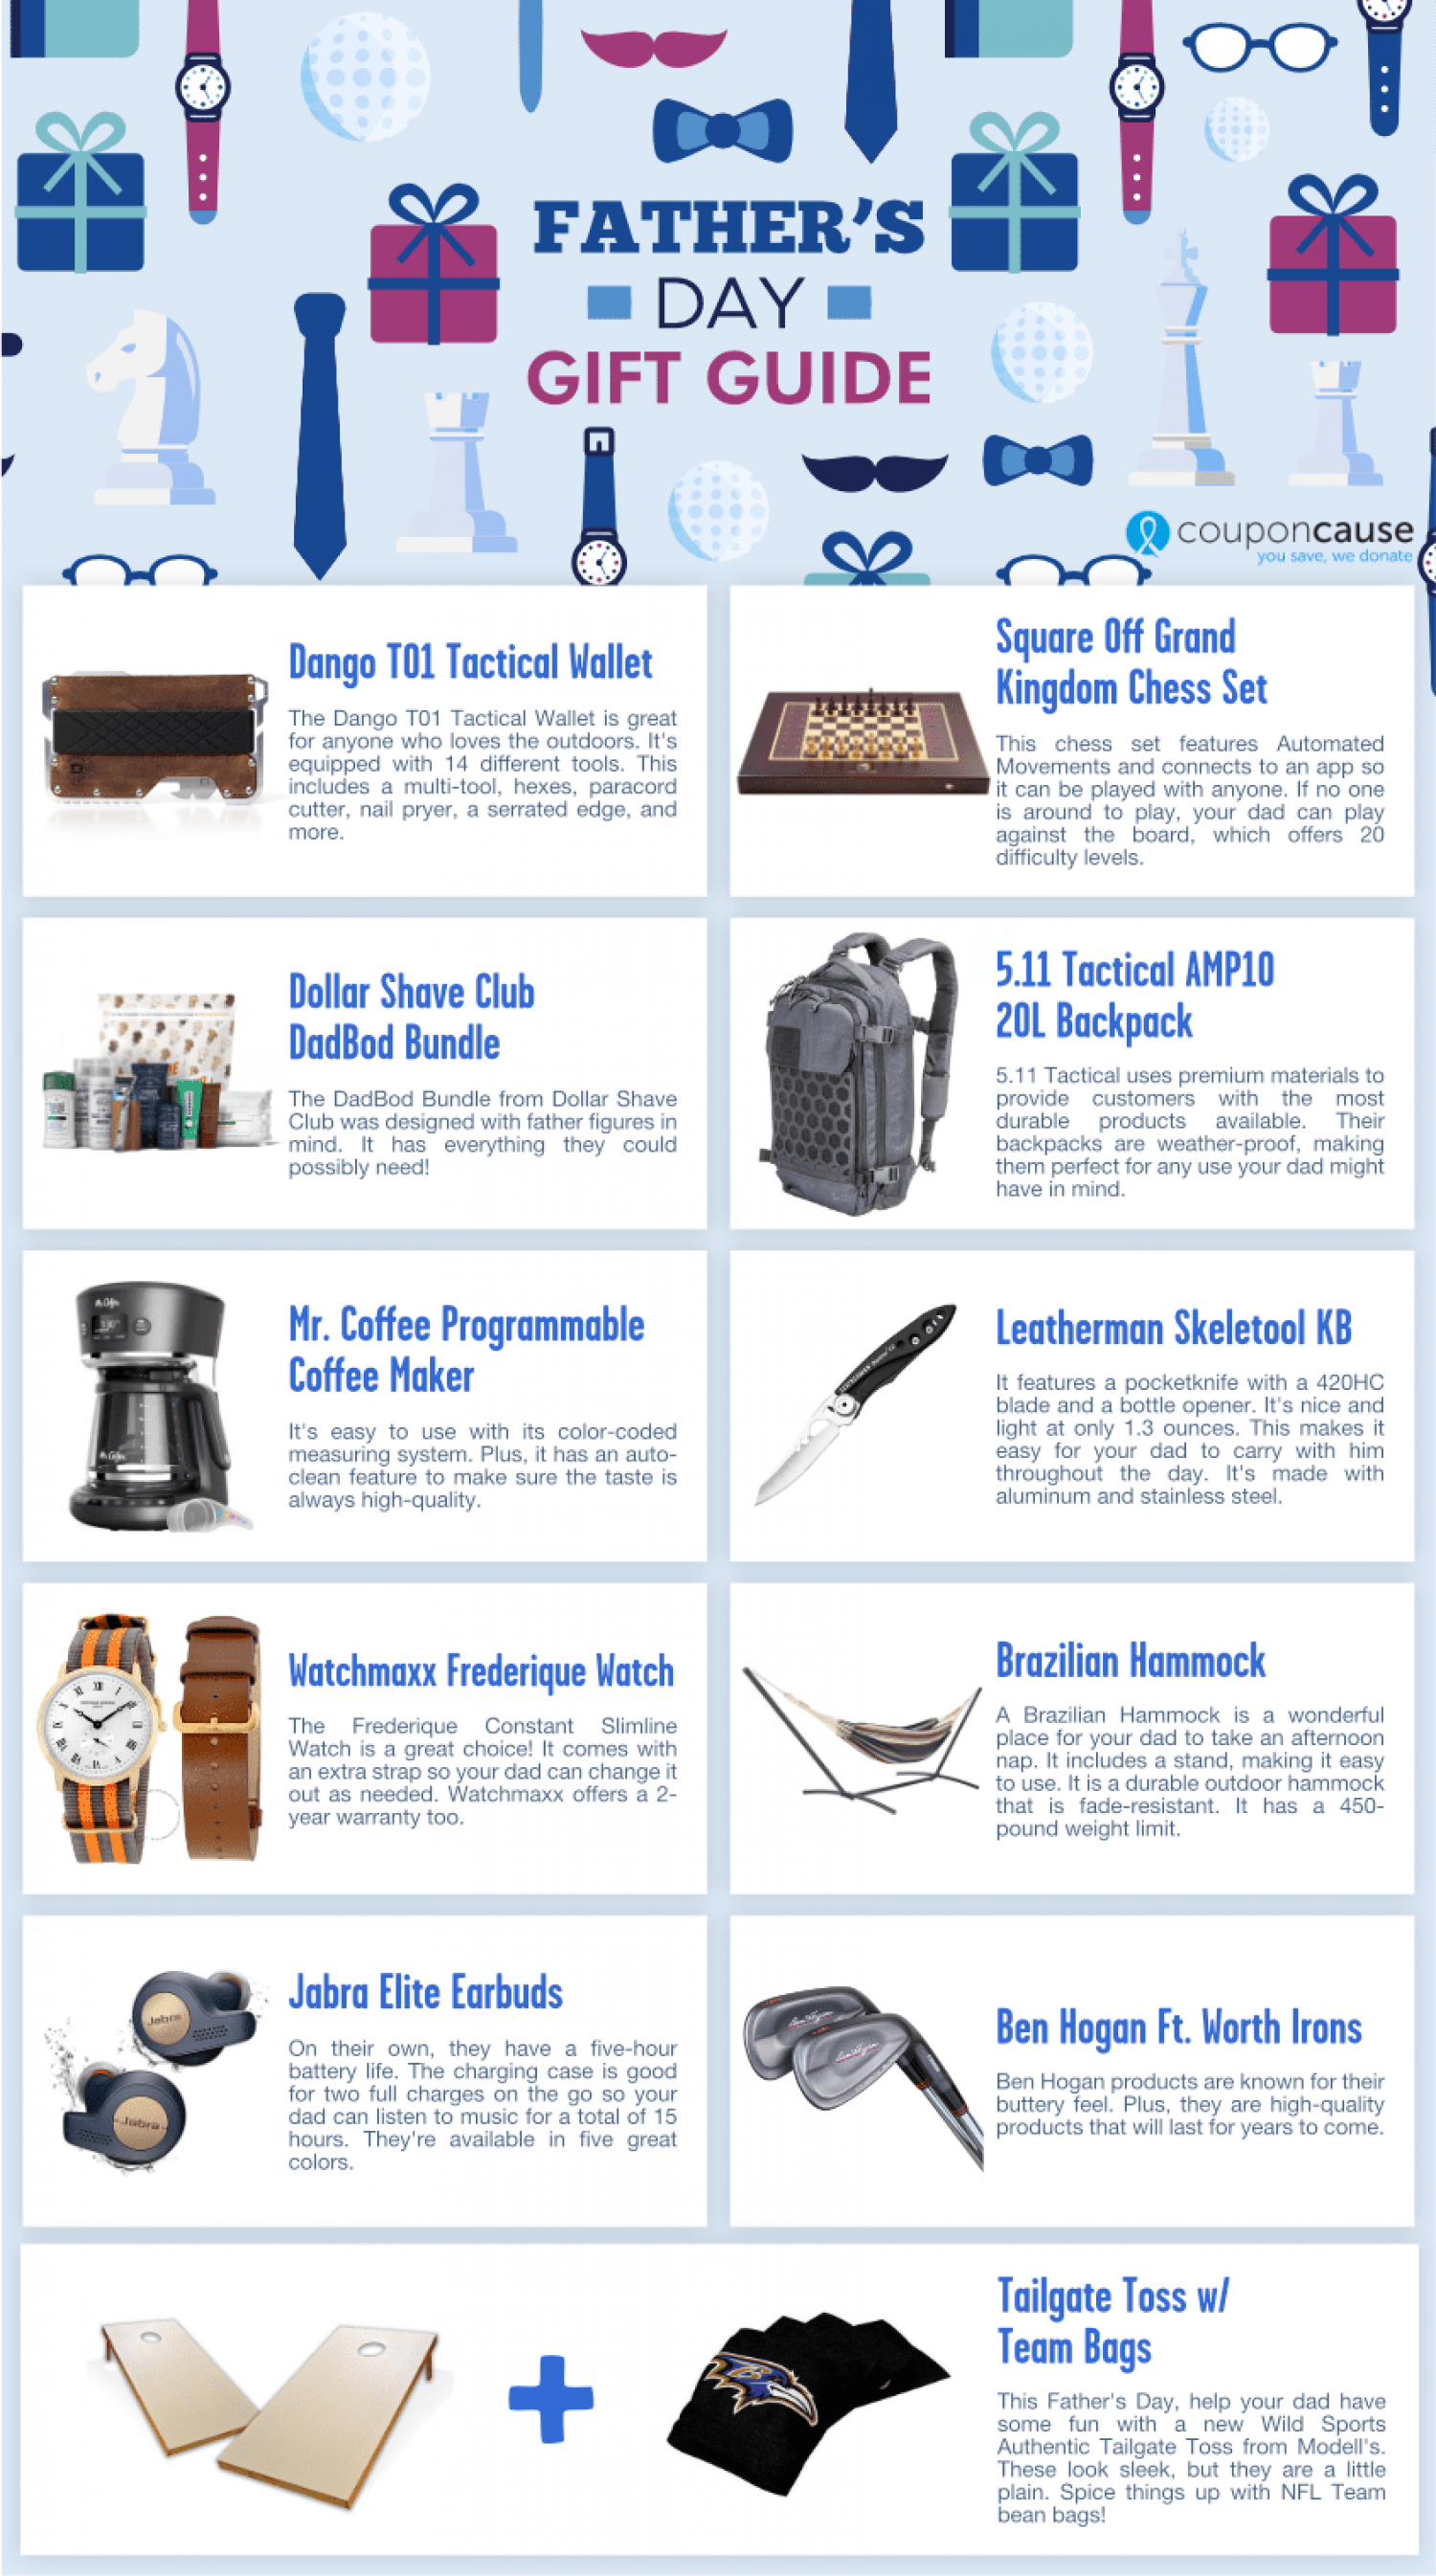 """Father's Day 2019 Gift Guide"" from Coupon Cause Infographic"